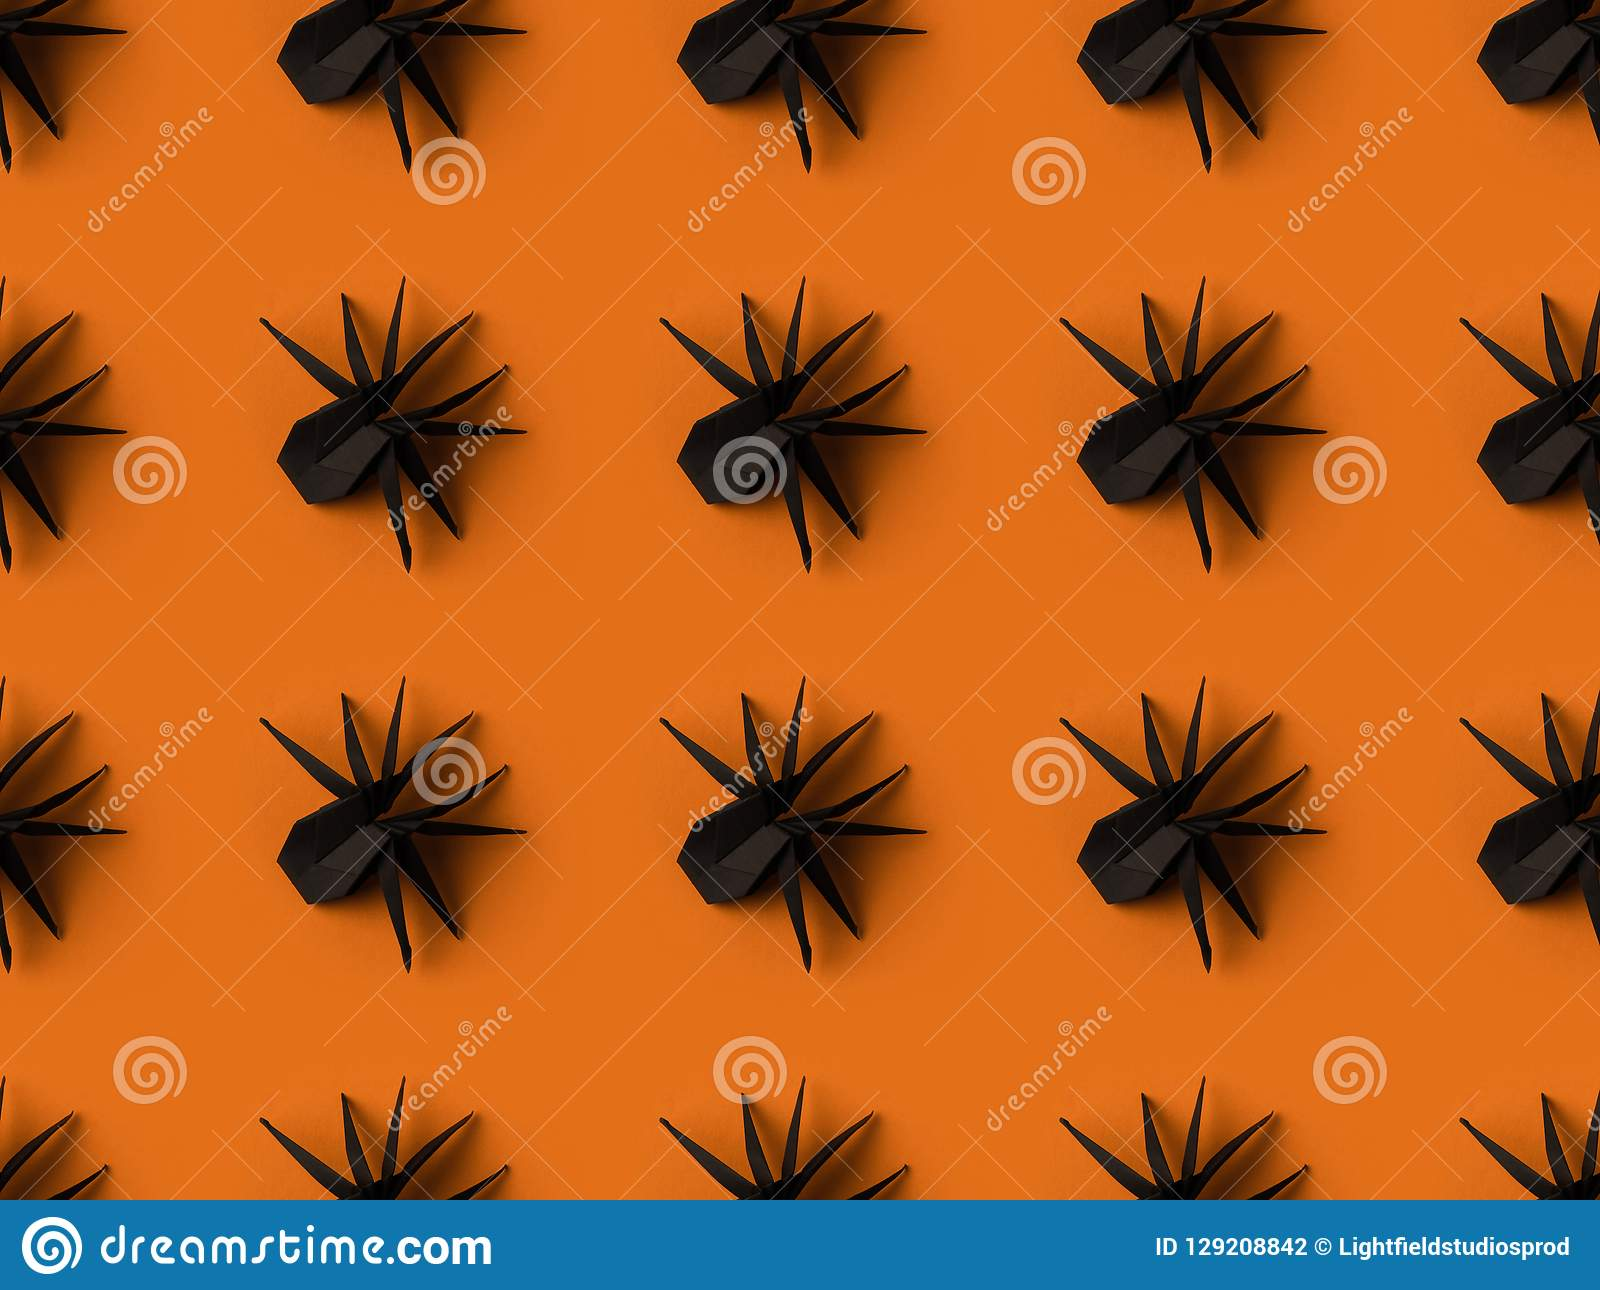 halloween texture with black origami spiders